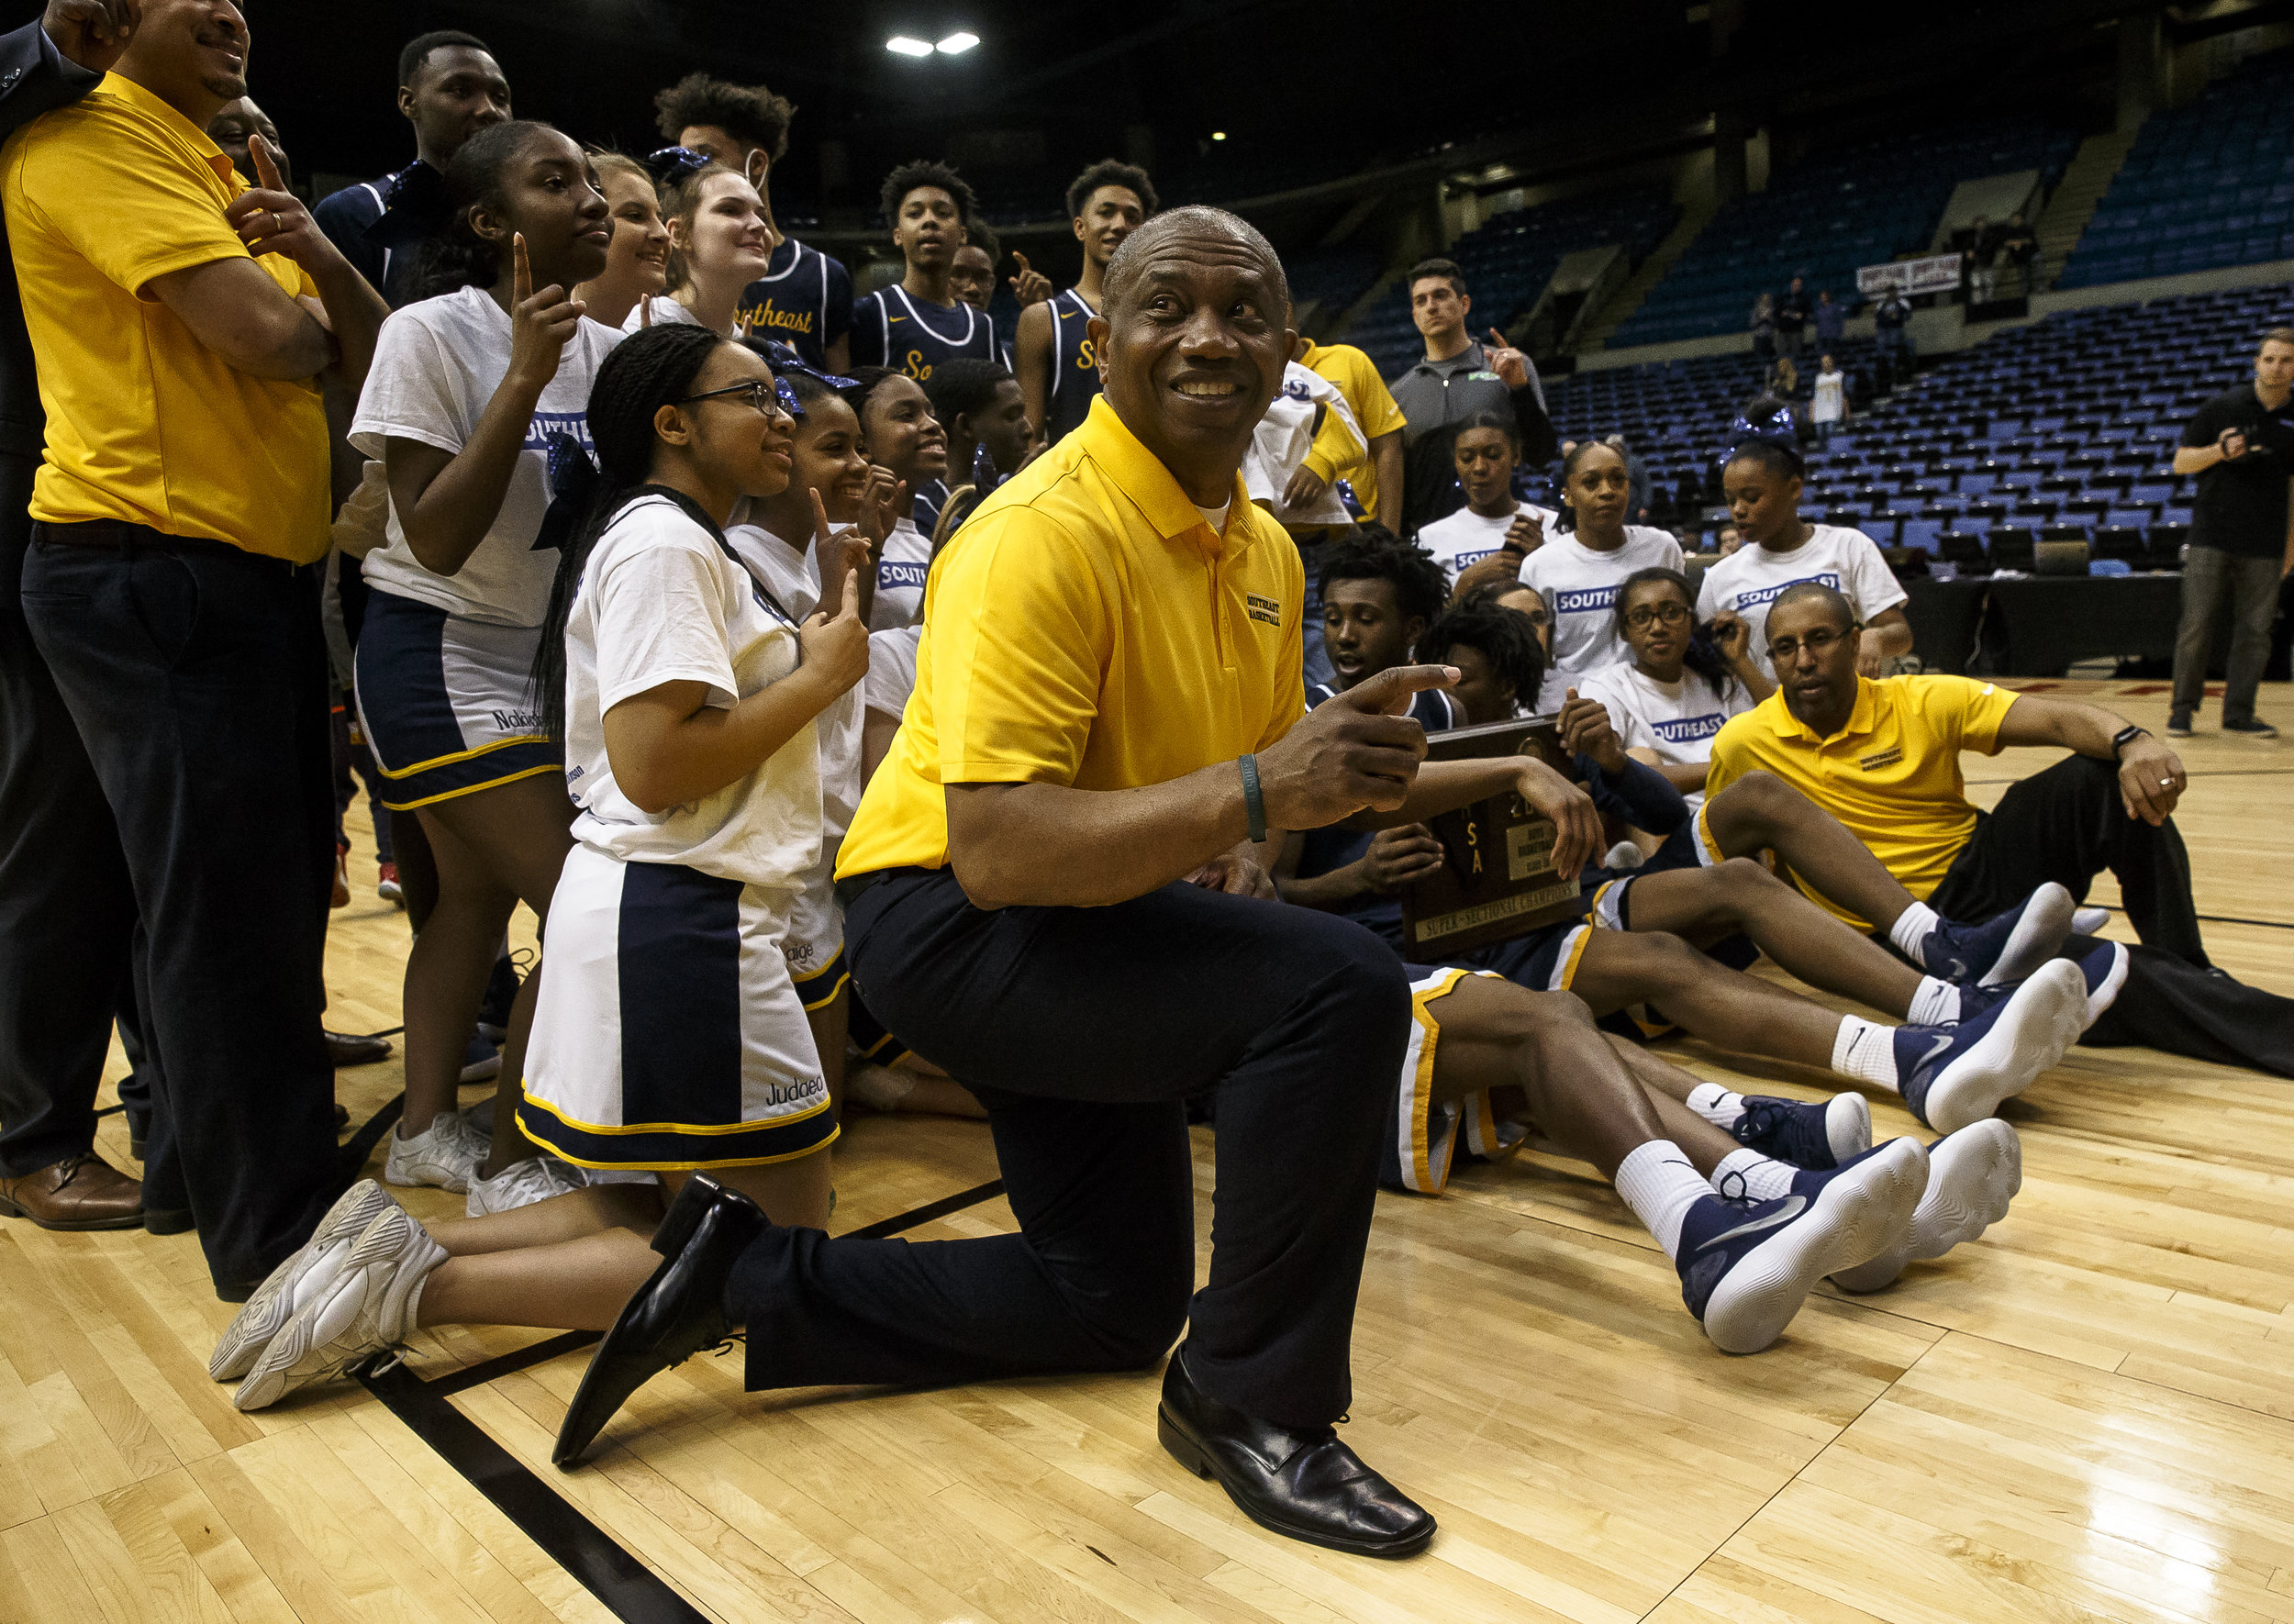 Southeast boys basketball head coach Lawrence Thomas joins his team to celebrate after the Spartans defeated Marion 56-51 in the Class 3A Springfield Supersectional at the Bank of Springfield Center, Tuesday, March 13, 2018, in Springfield, Ill. [Justin L. Fowler/The State Journal-Register]